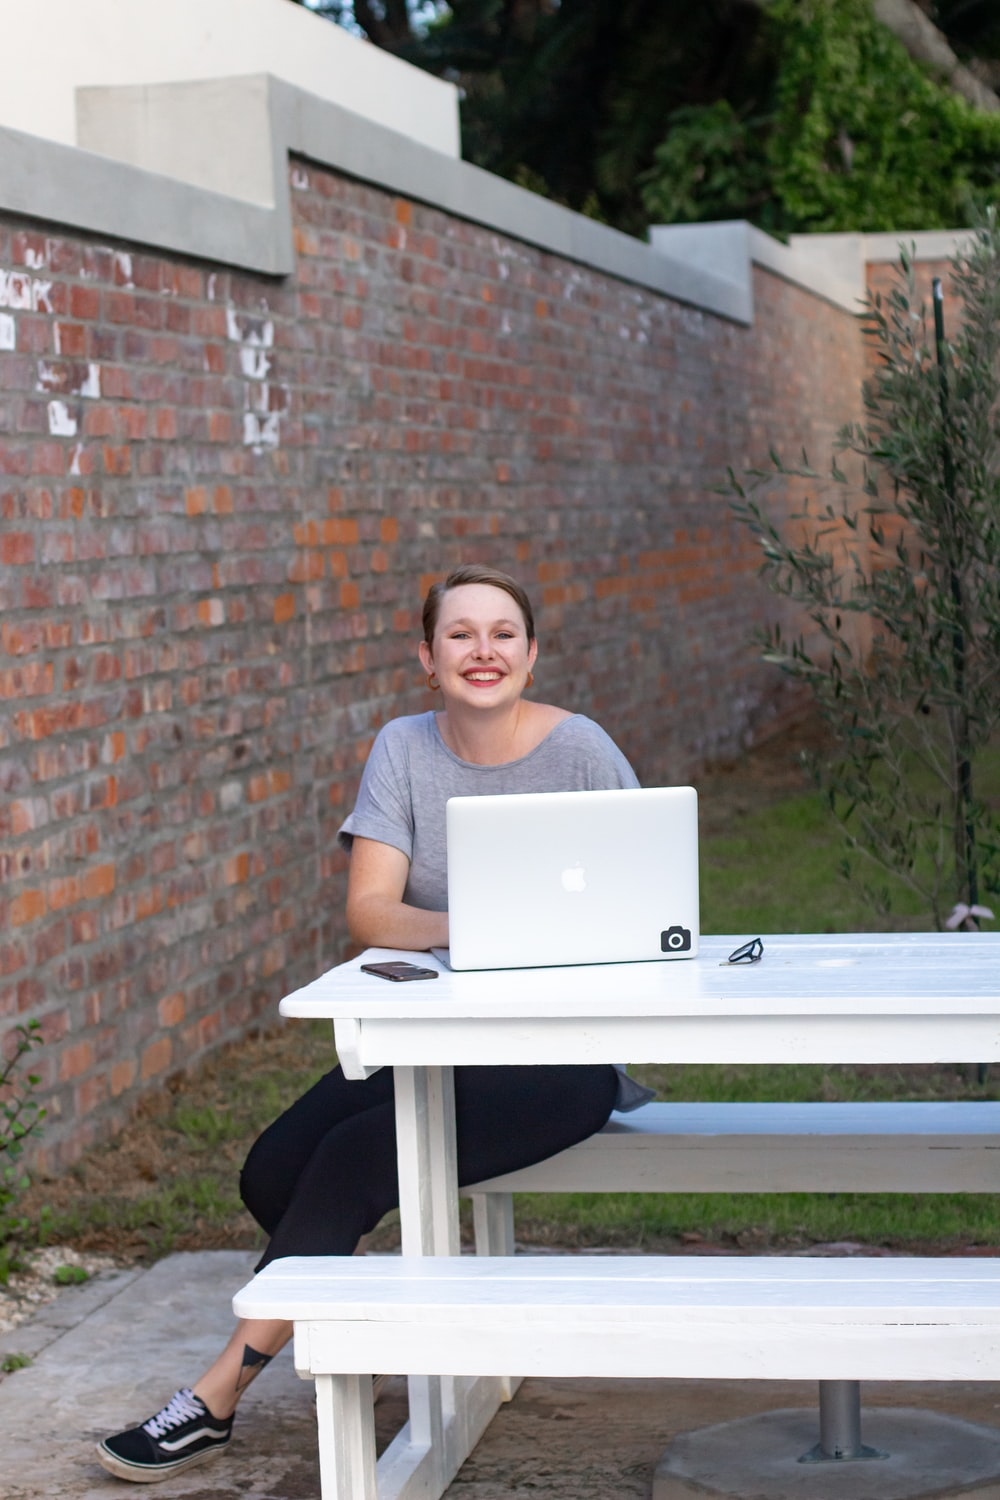 woman in black shirt sitting on white table using silver macbook